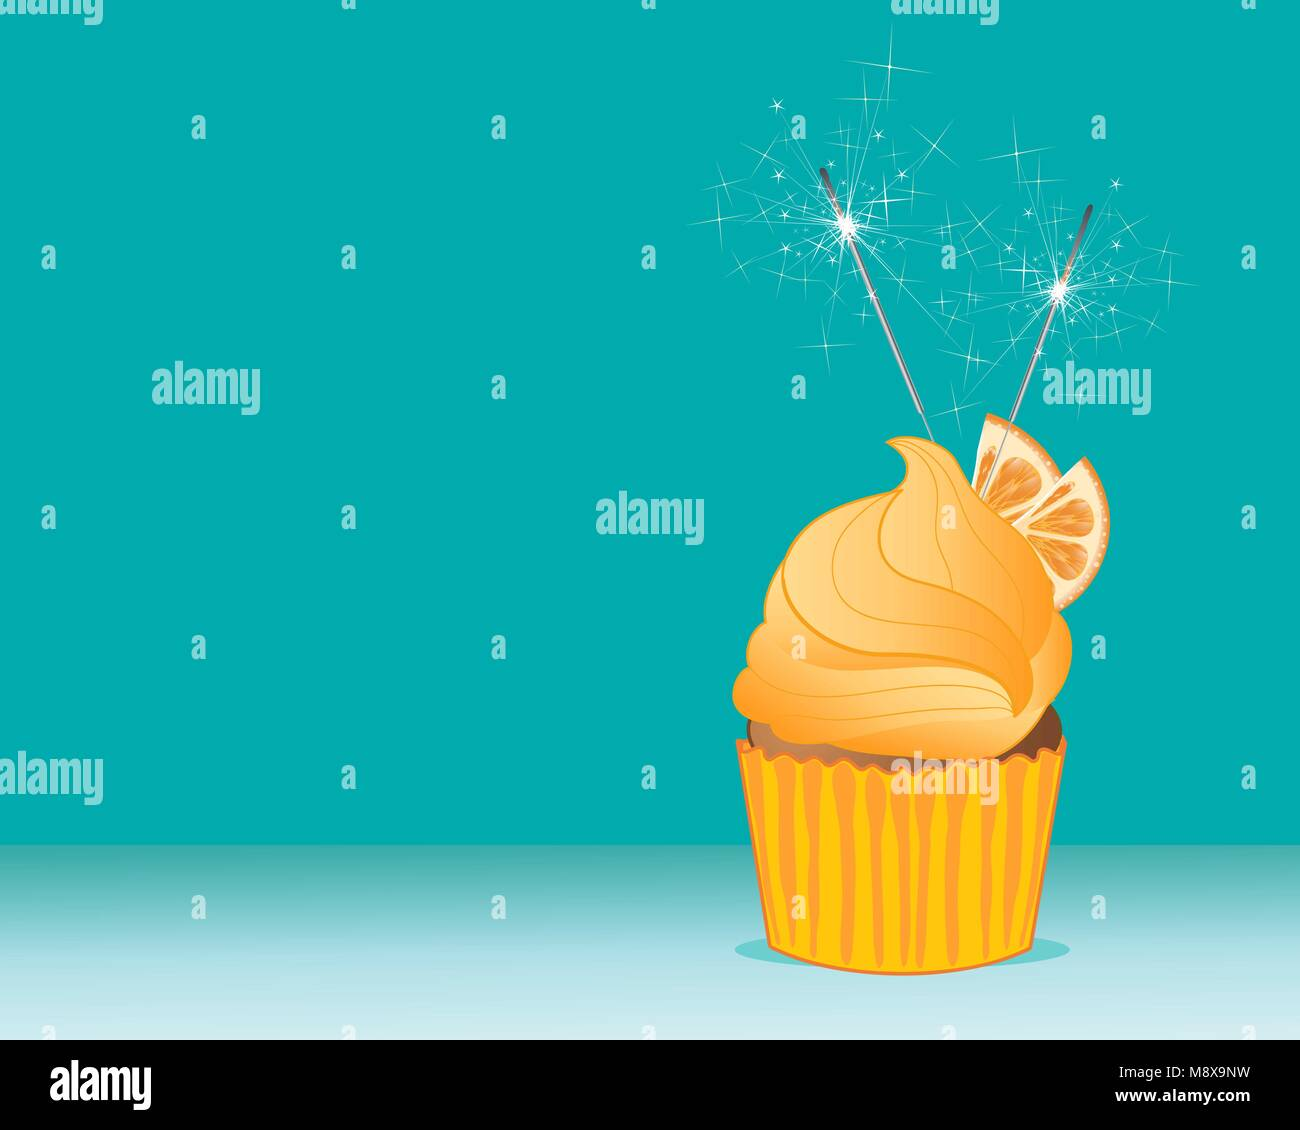 a vector illustration in eps 10 format of a bright orange cupcake with fruit decoration and sparklers on a turquoise - Stock Vector